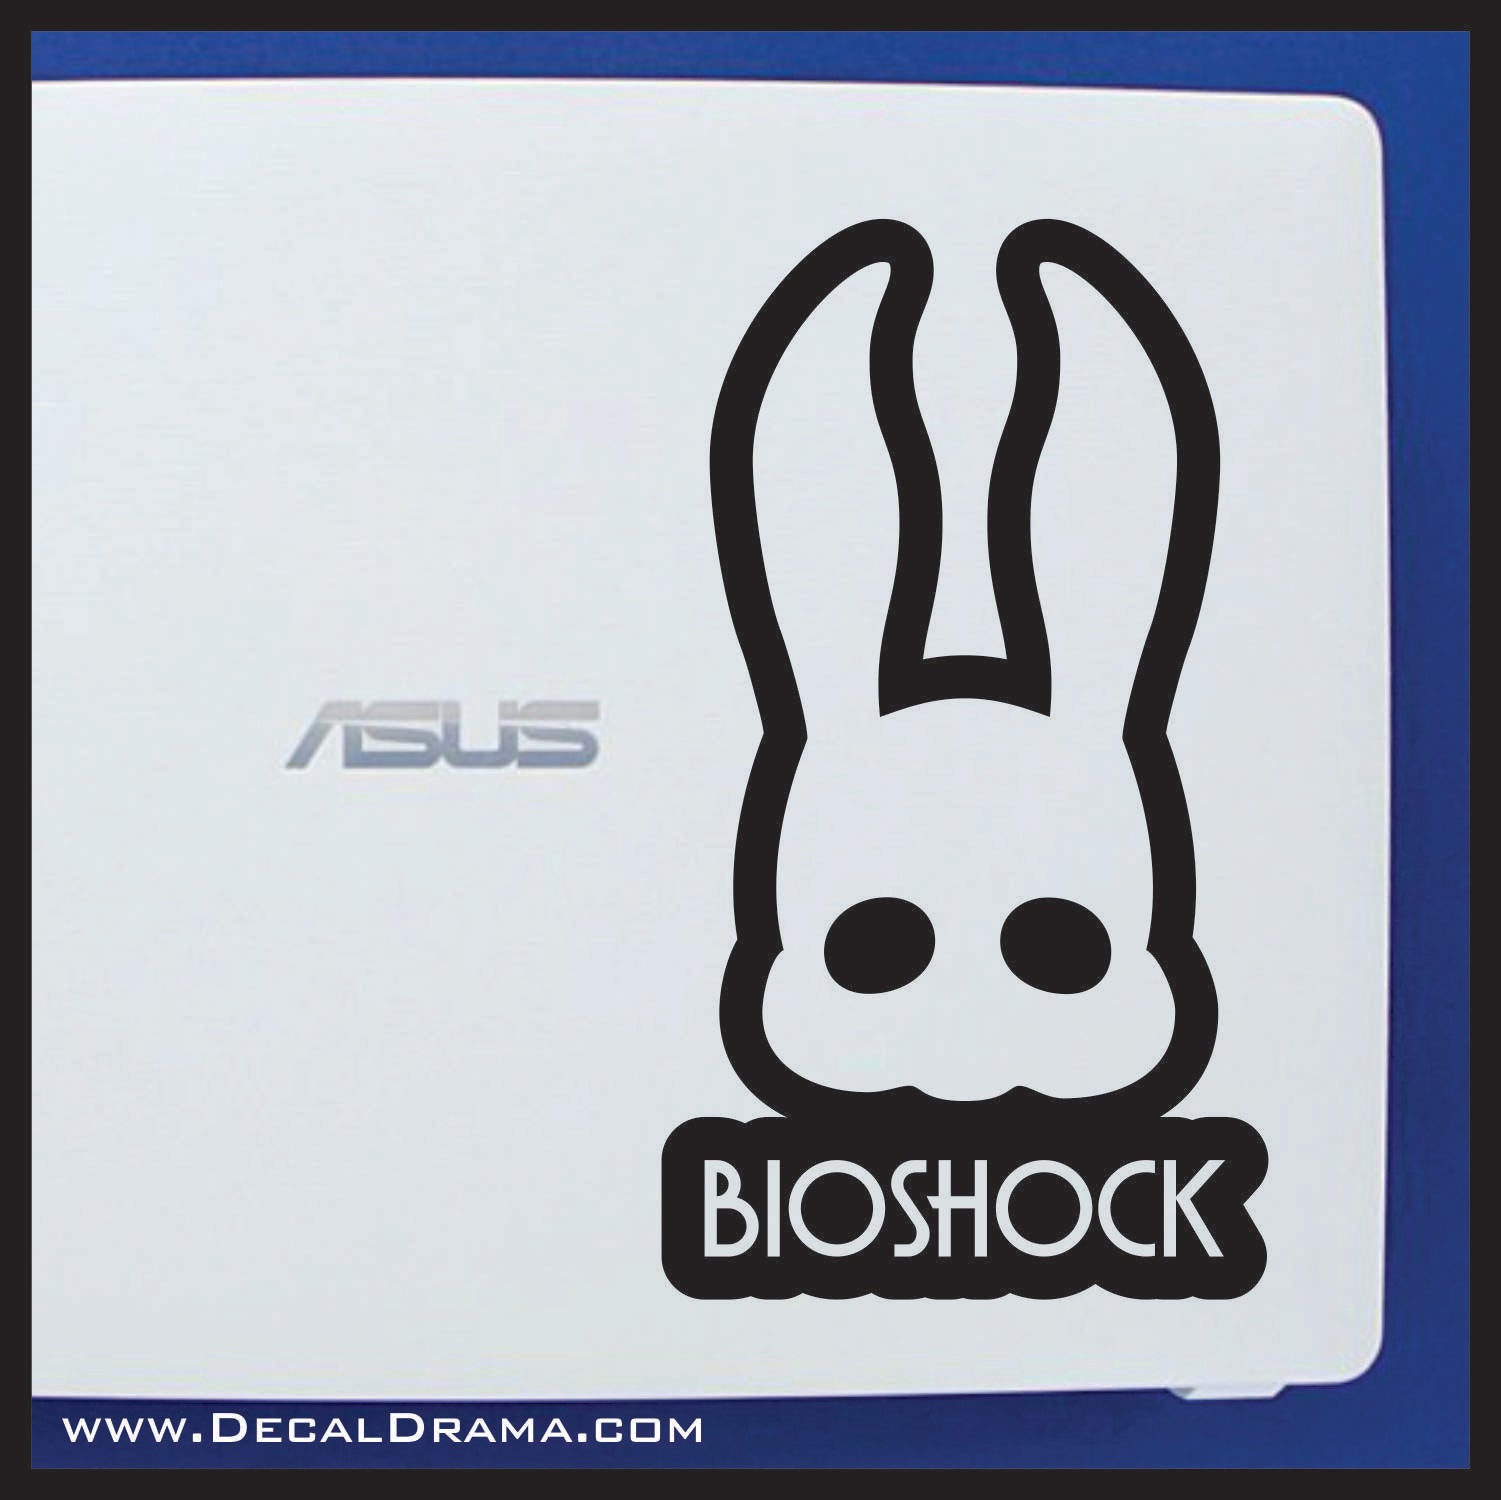 Splicer Bunny Masquerade Mask, Bioshock-inspired Vinyl Decal